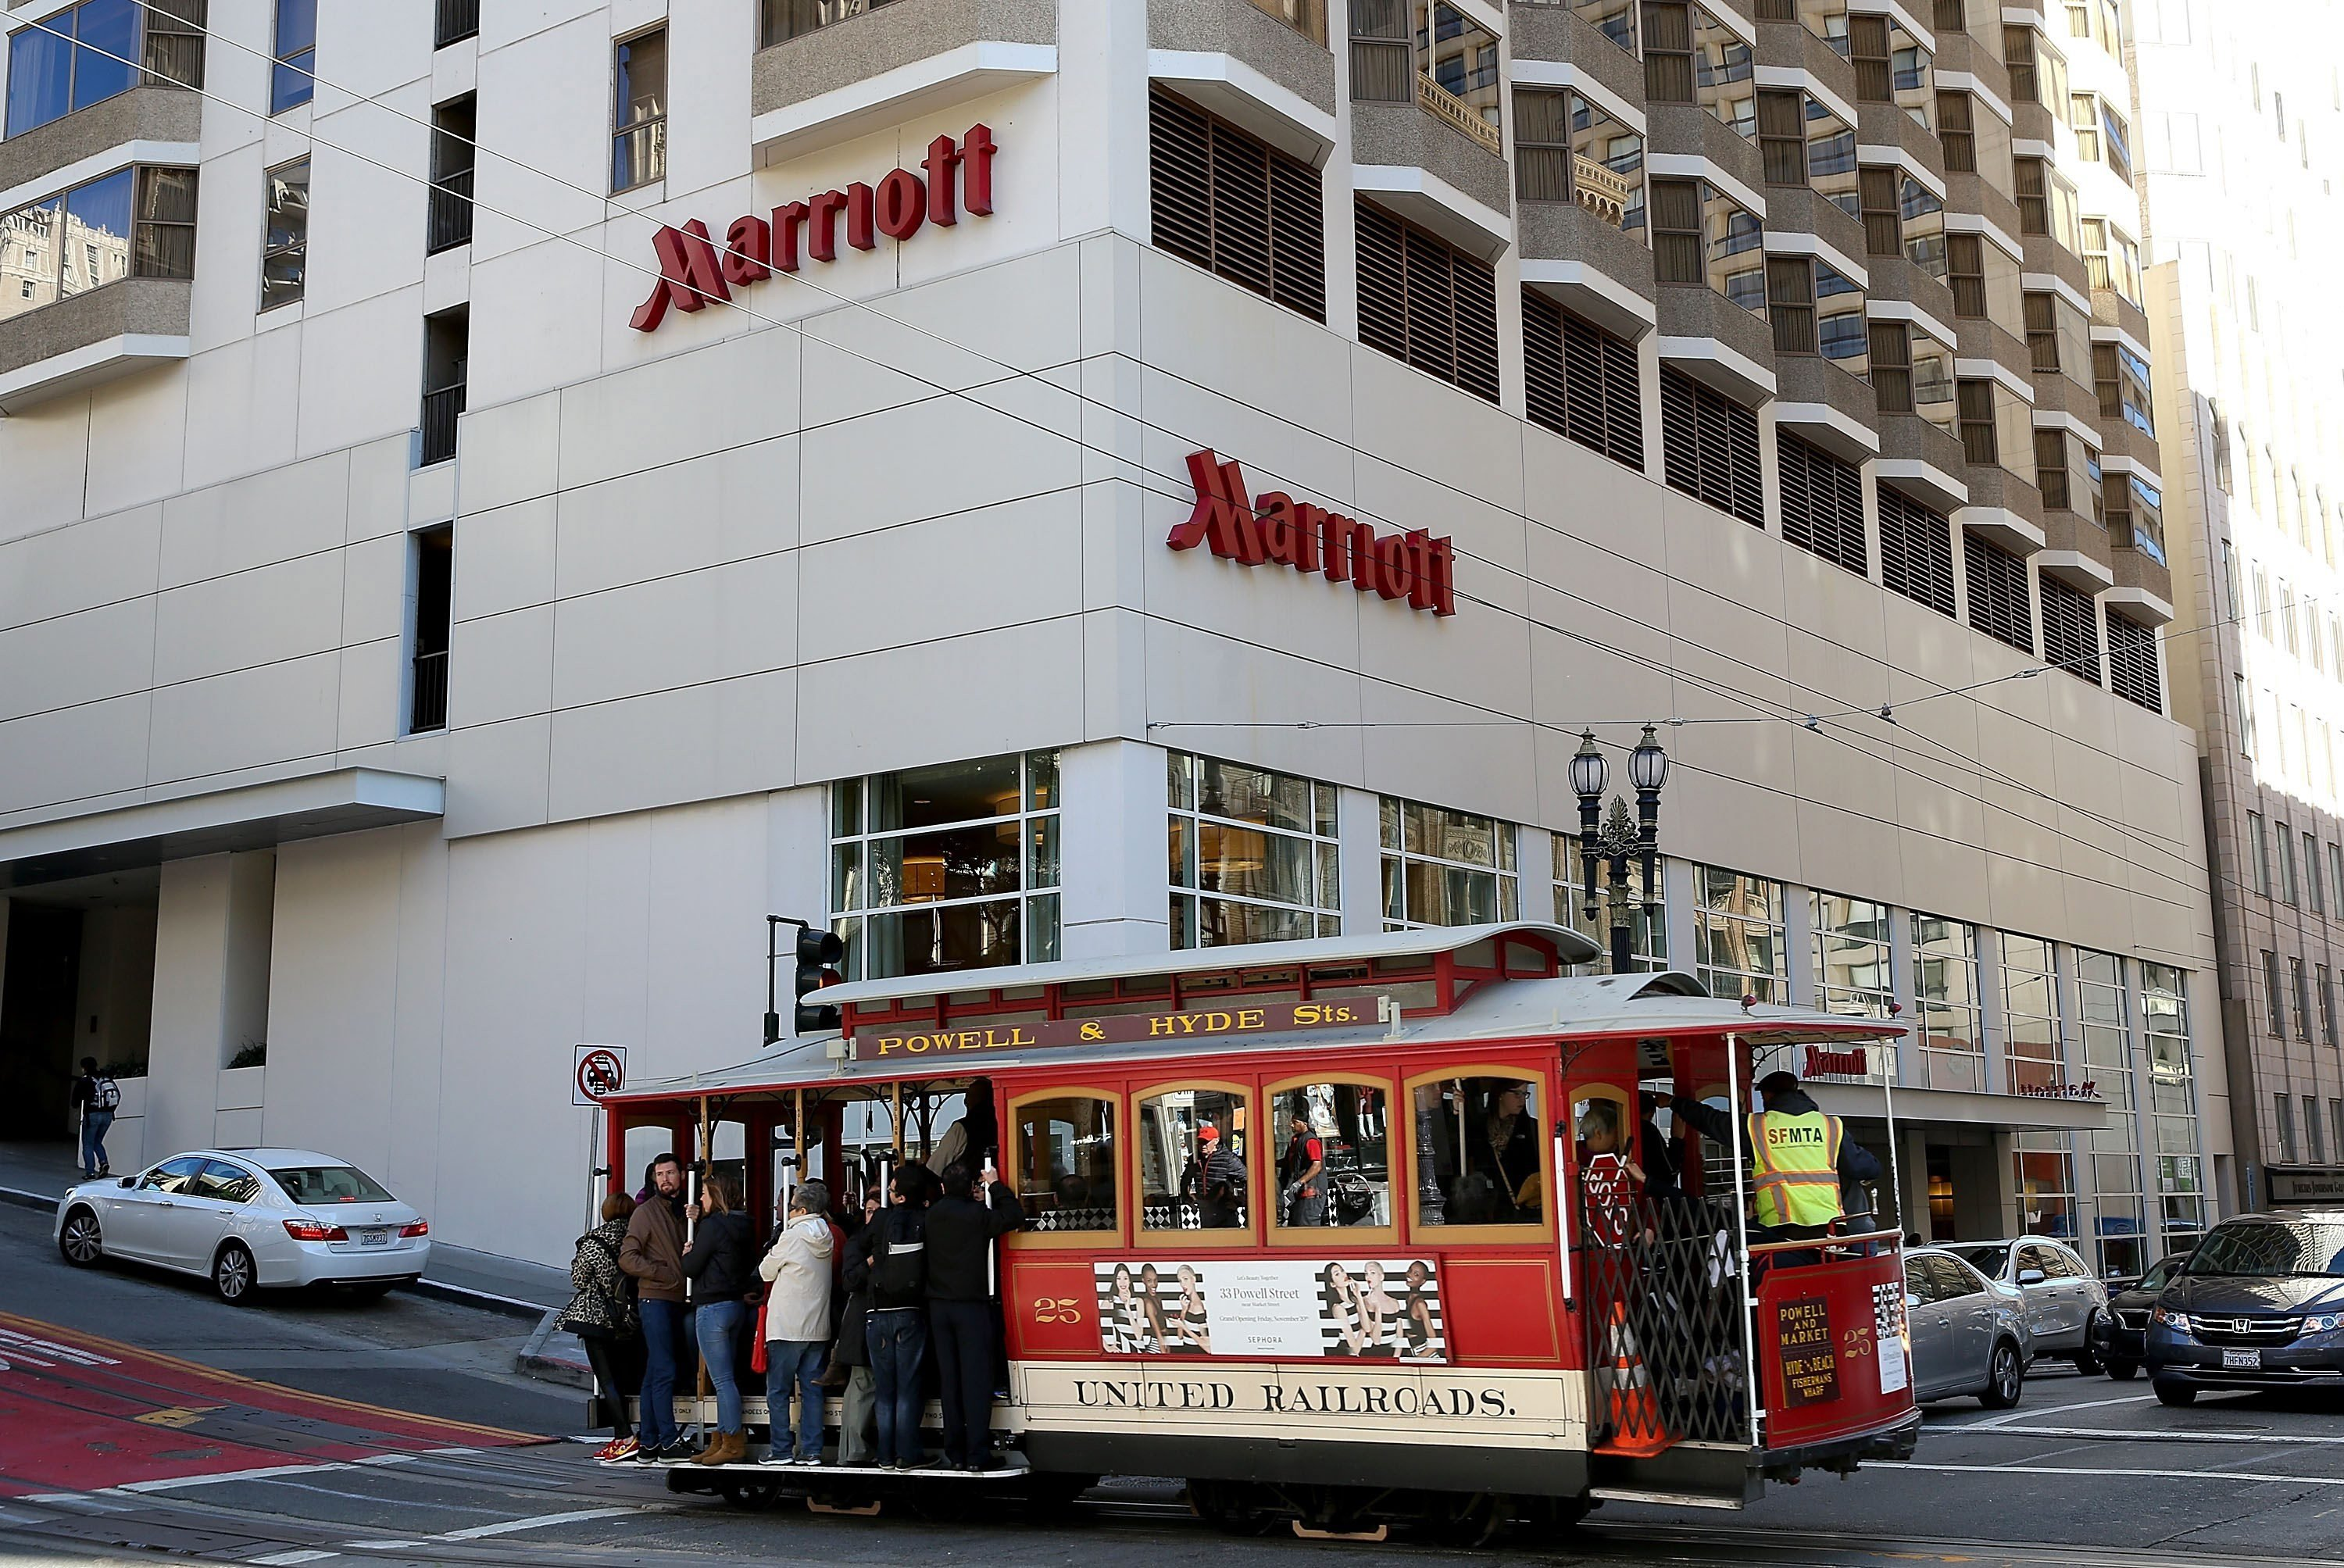 A cable car passes in front of a Marriott hotel in San Francisco, California, U.S., Nov. 16, 2015 (Getty Images via AFP File Photo)